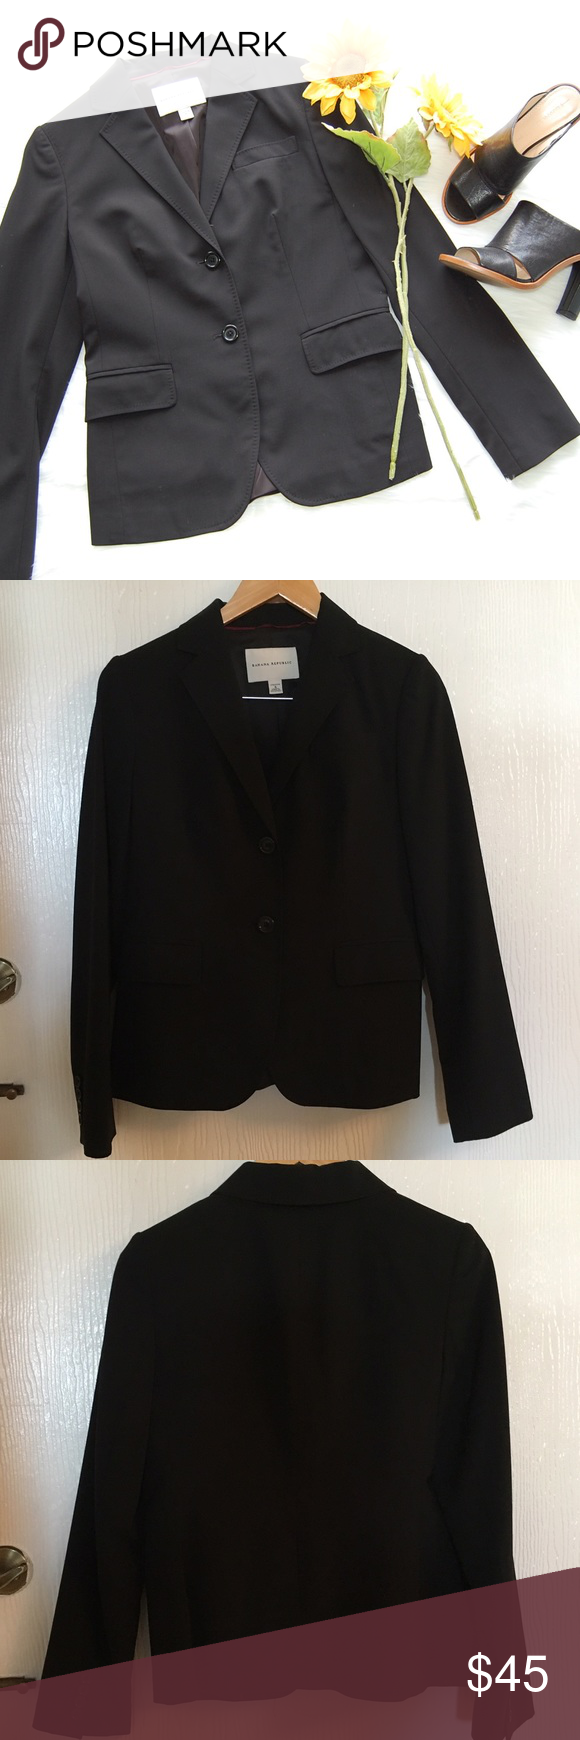 BANANA REPUBLIC Blazer Black blazer with two button closure and two front pockets. Has stretch. Shell is wool/spandex blend, blush lining is 100% polyester. Sleeve lining is polyester/elastane blend. Some fading at top of collar but you can't tell when it's on. MATCHING PANTS IN OTHER LISTING.   Blog: bringingupsuns.com Instagram: @bringingupsuns Banana Republic Jackets & Coats Blazers